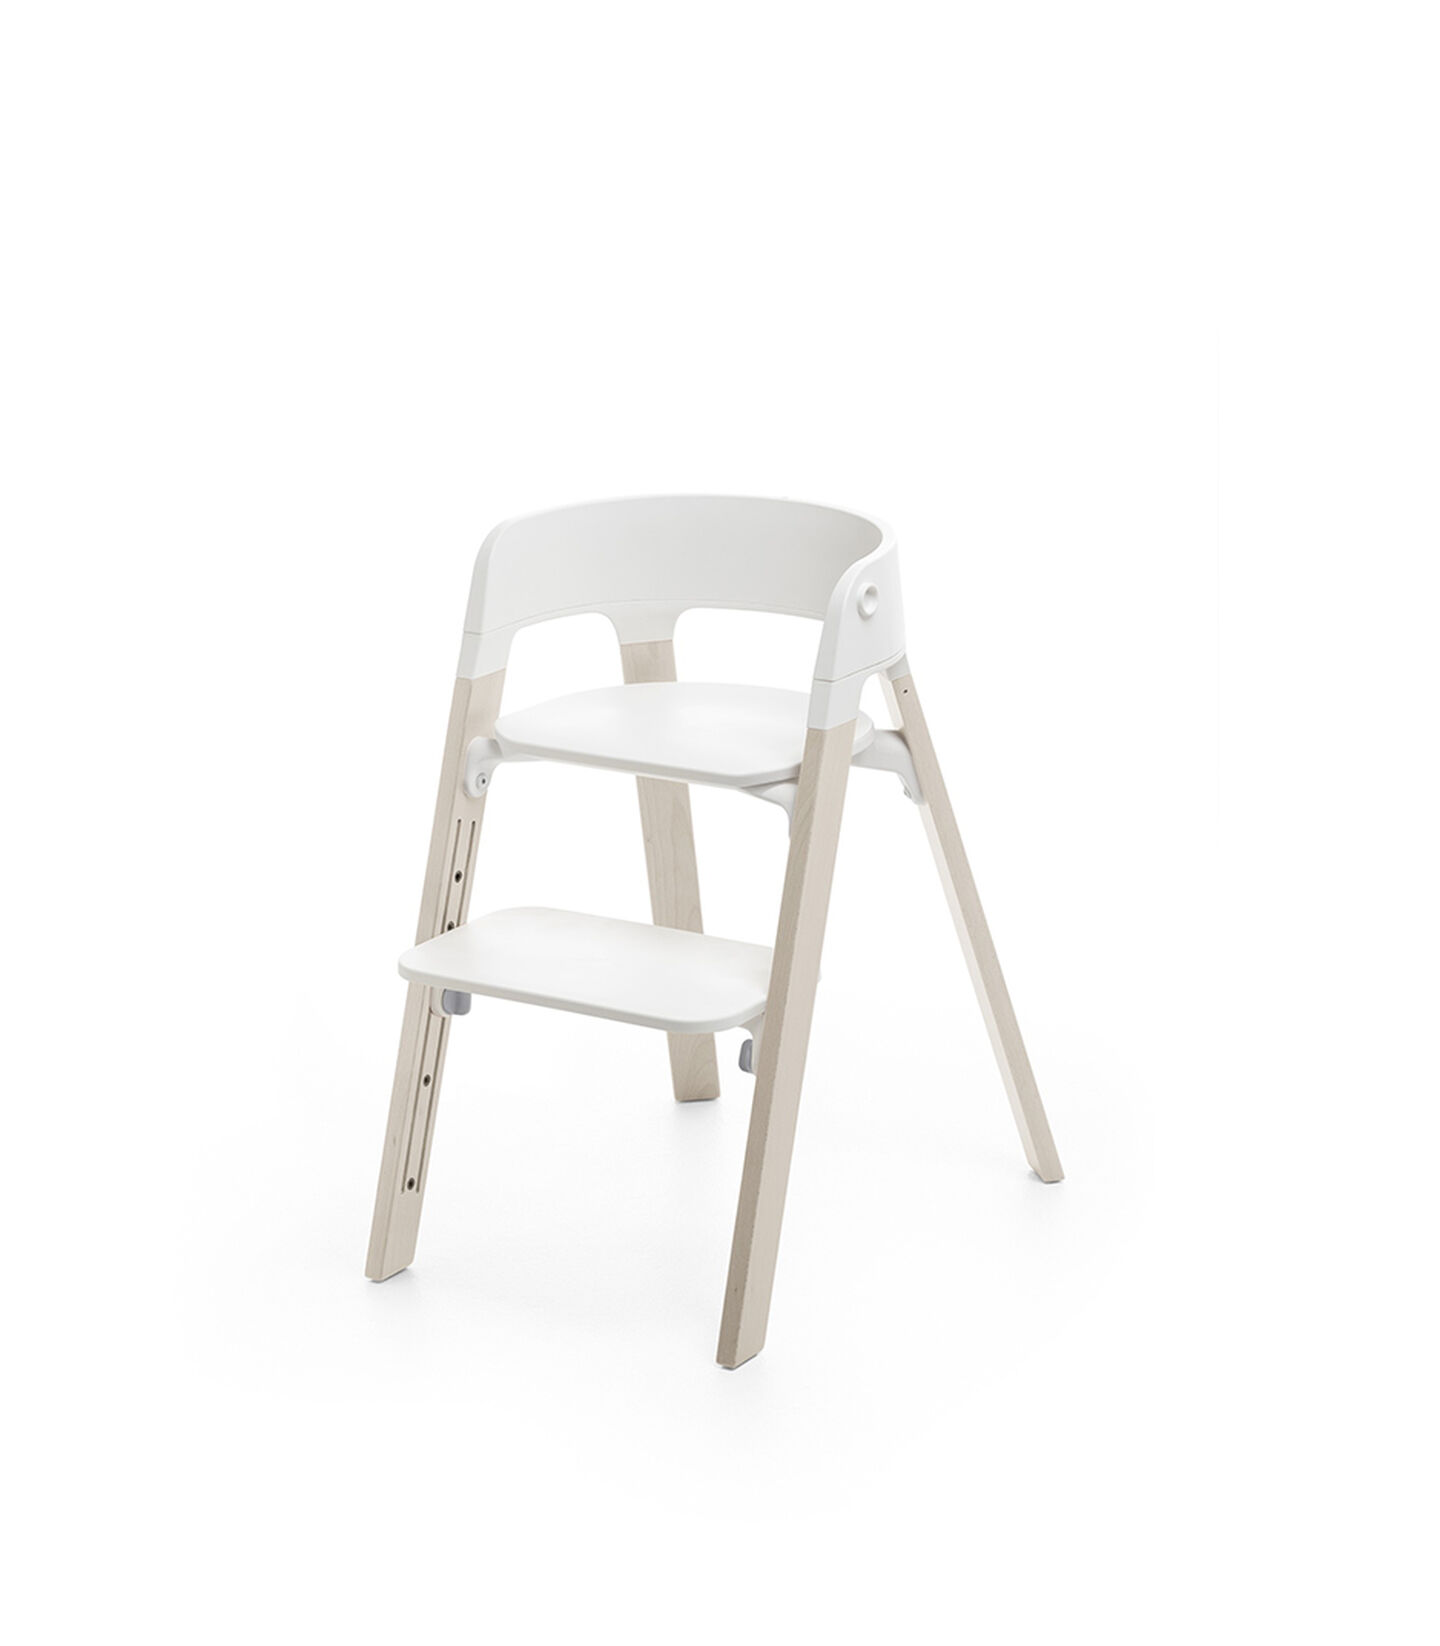 Stokke® Steps™ Chair Whitewash Legs with White, Whitewash, mainview view 2